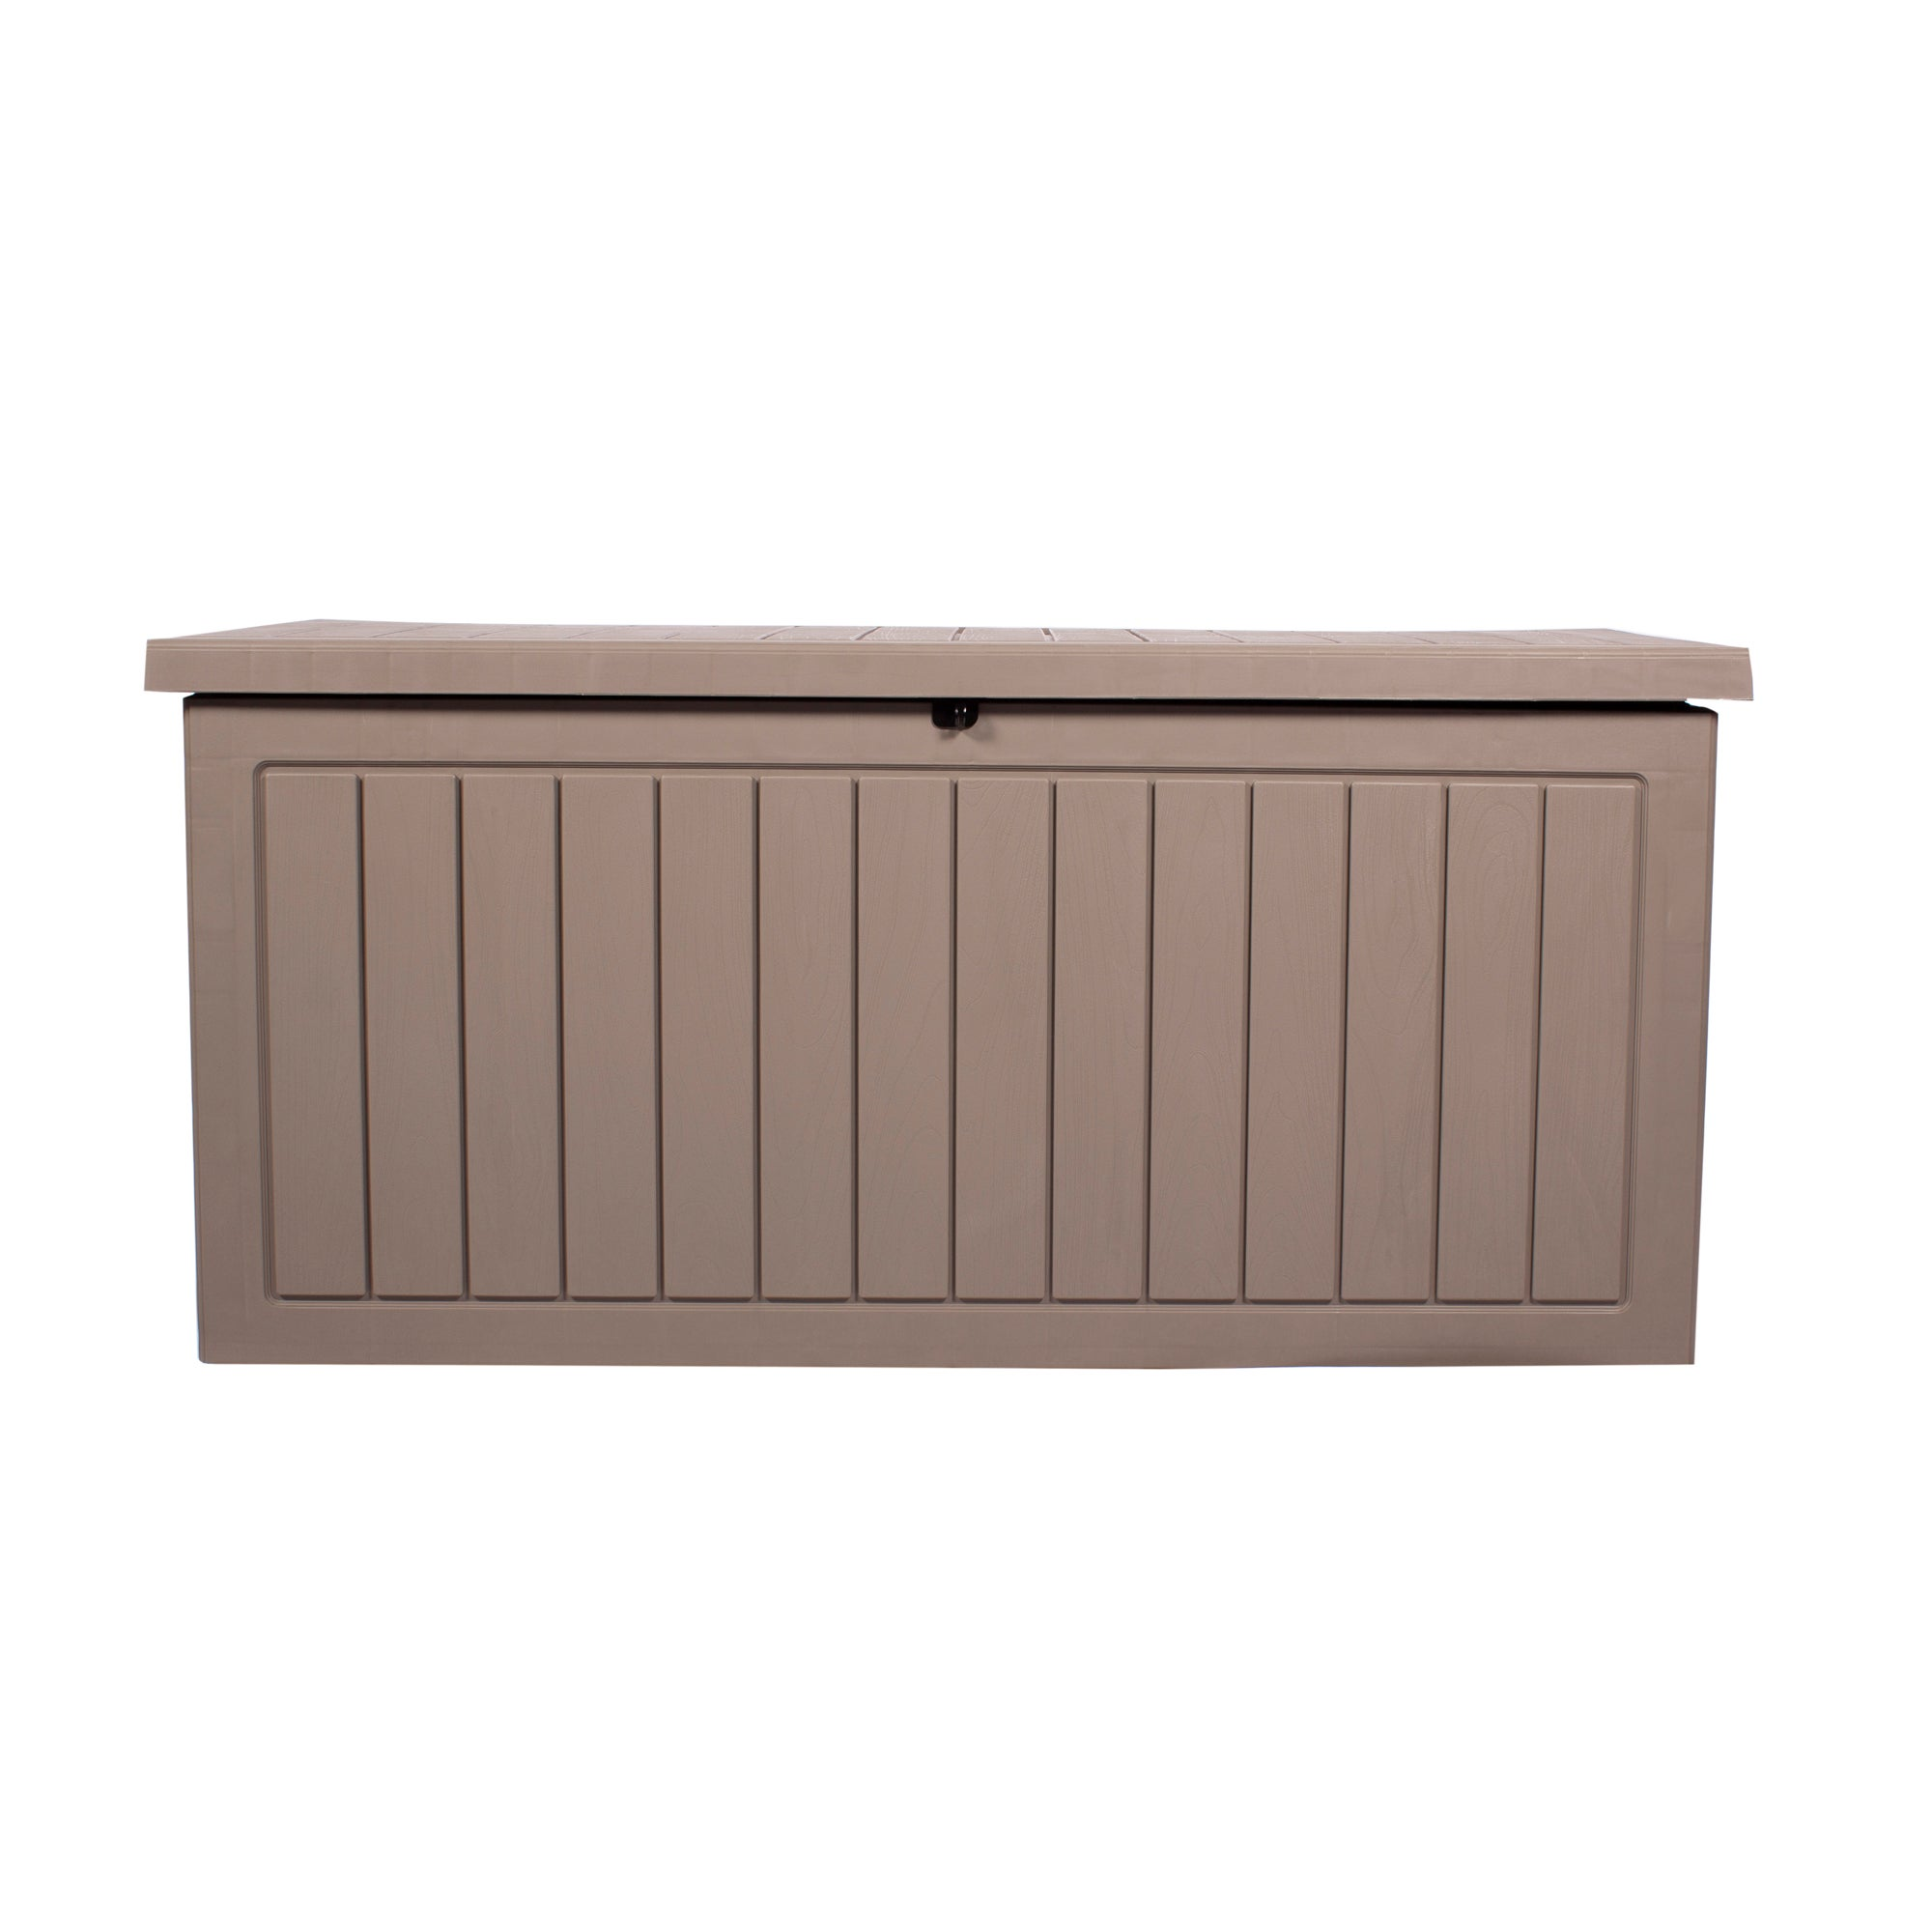 Dunelm Grey Deluxe Waterproof Outdoor Storage Box with Double Gas Lift Grey Medium